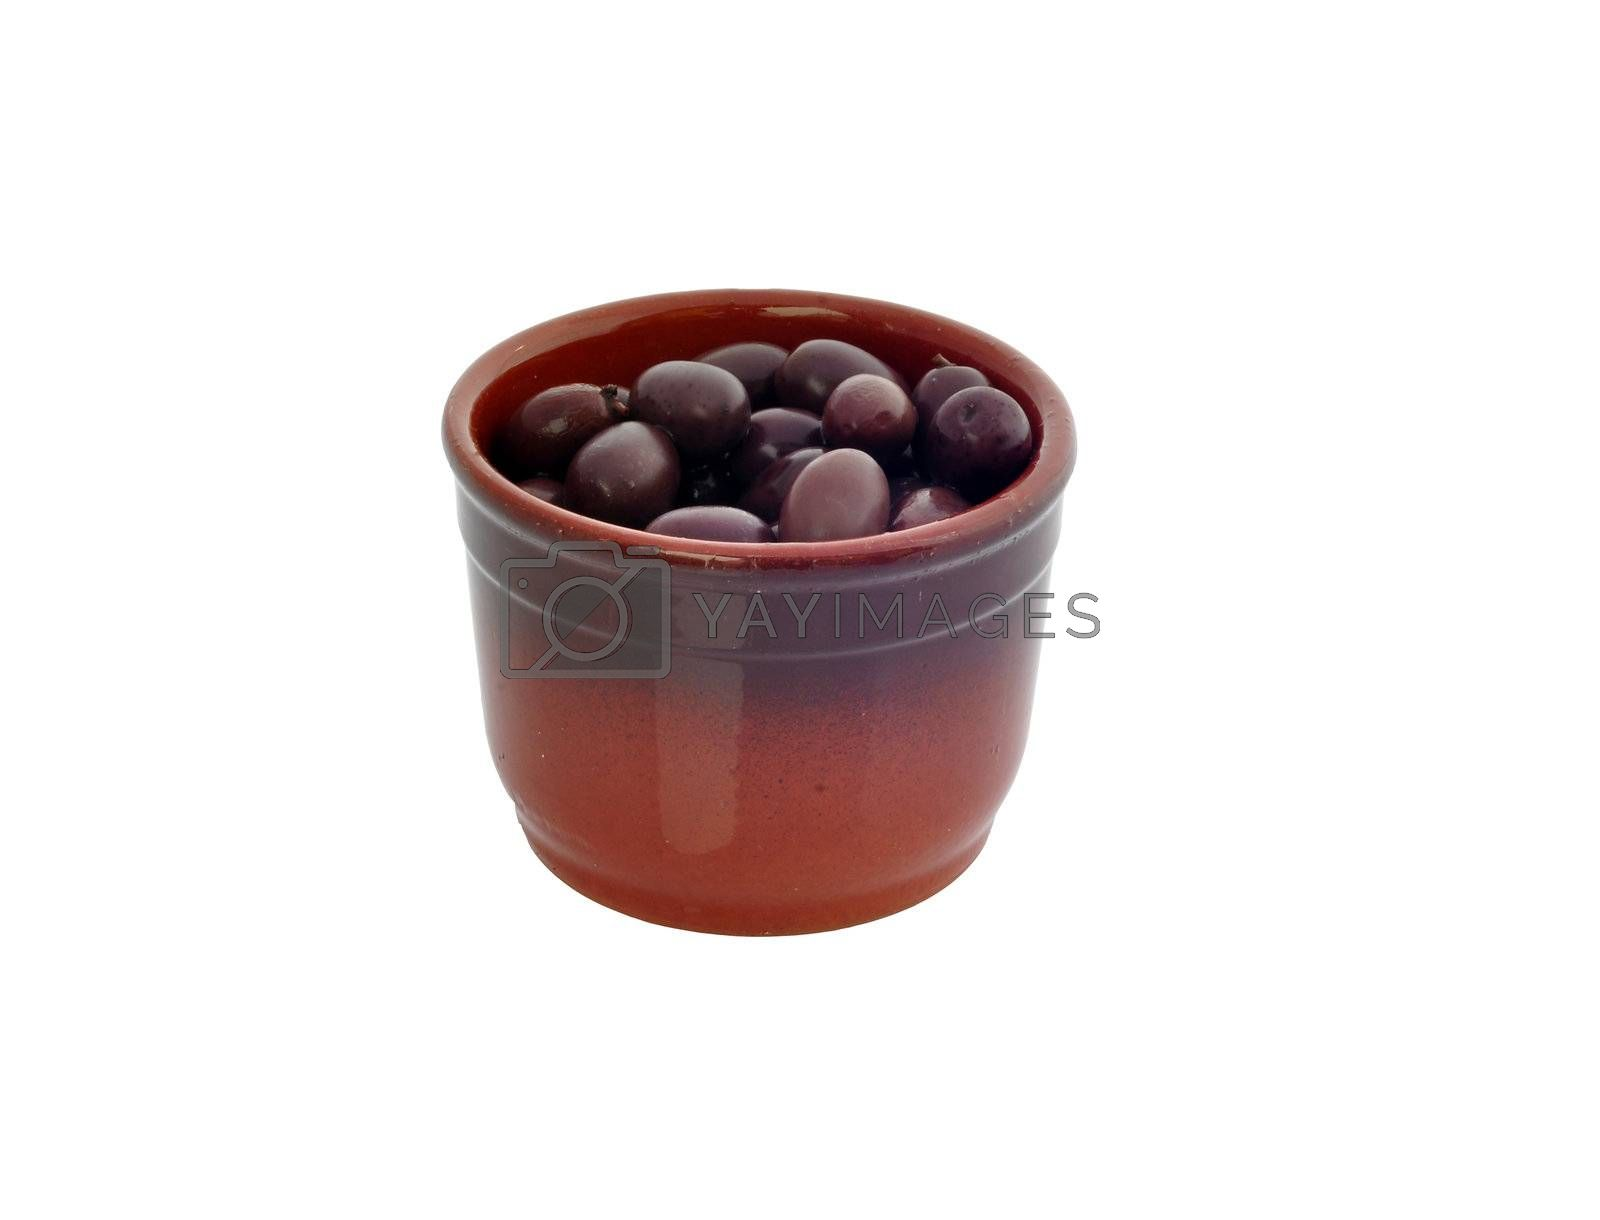 a container with olives on a white background